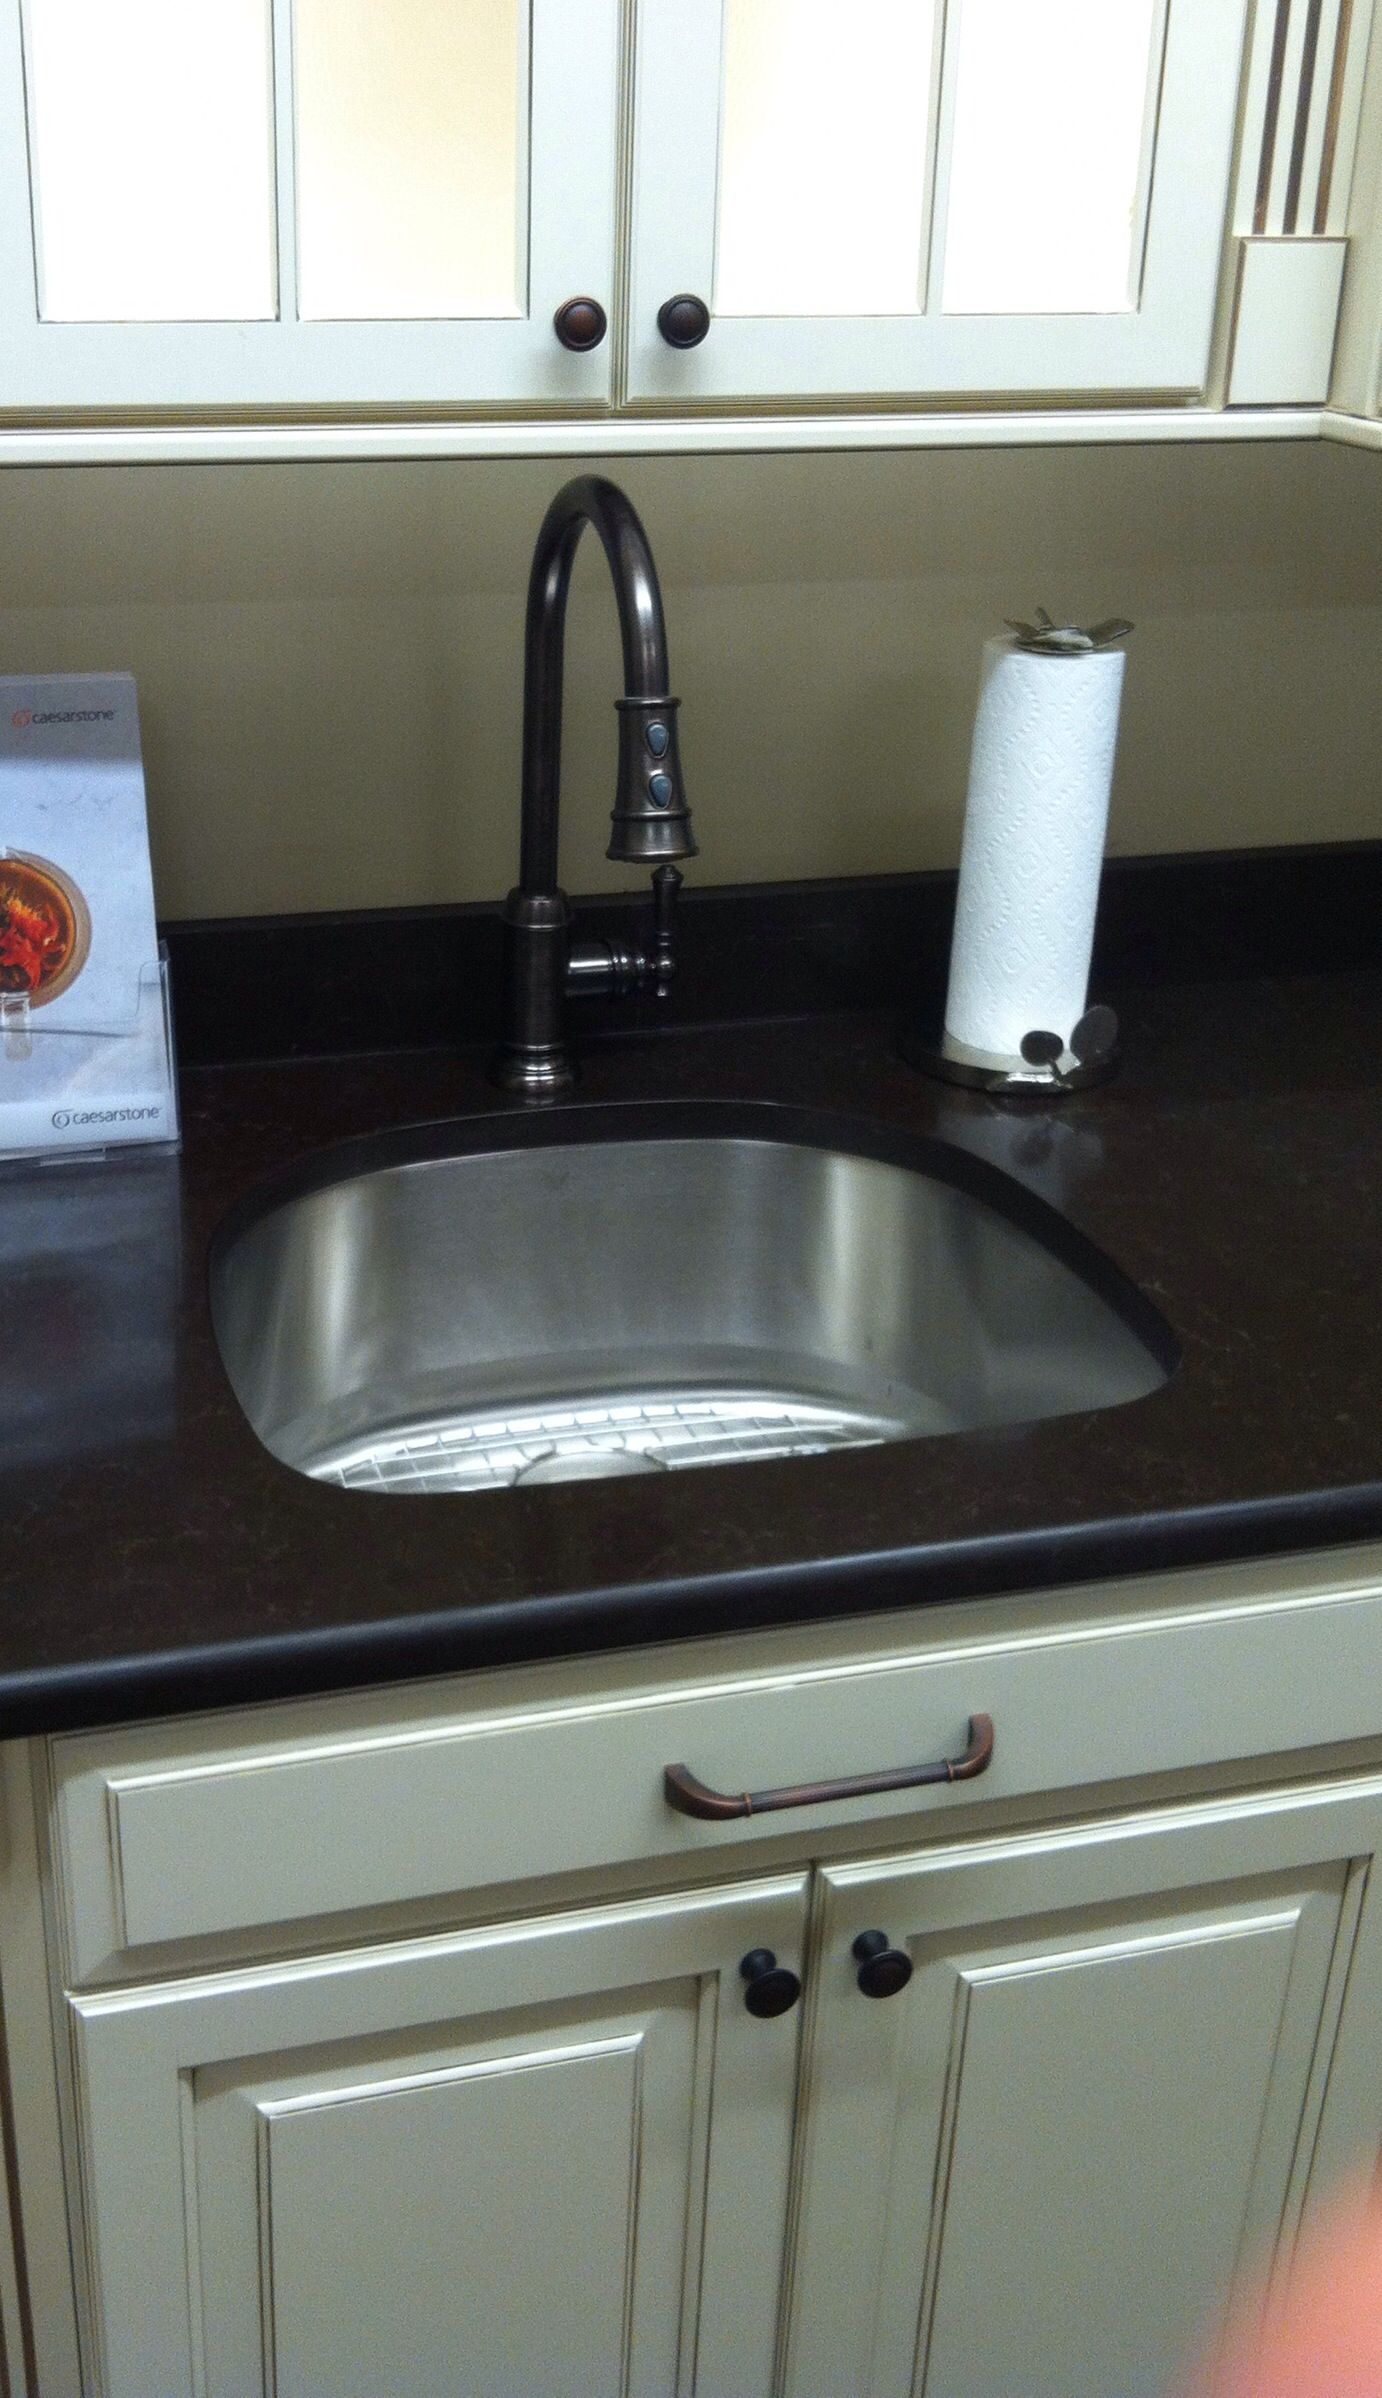 Lovely Artisan Brand 16gauge Ar 2321 Stainless Sink With Artisan Af410ab Faucet.  Great Look With Lasting Quality.